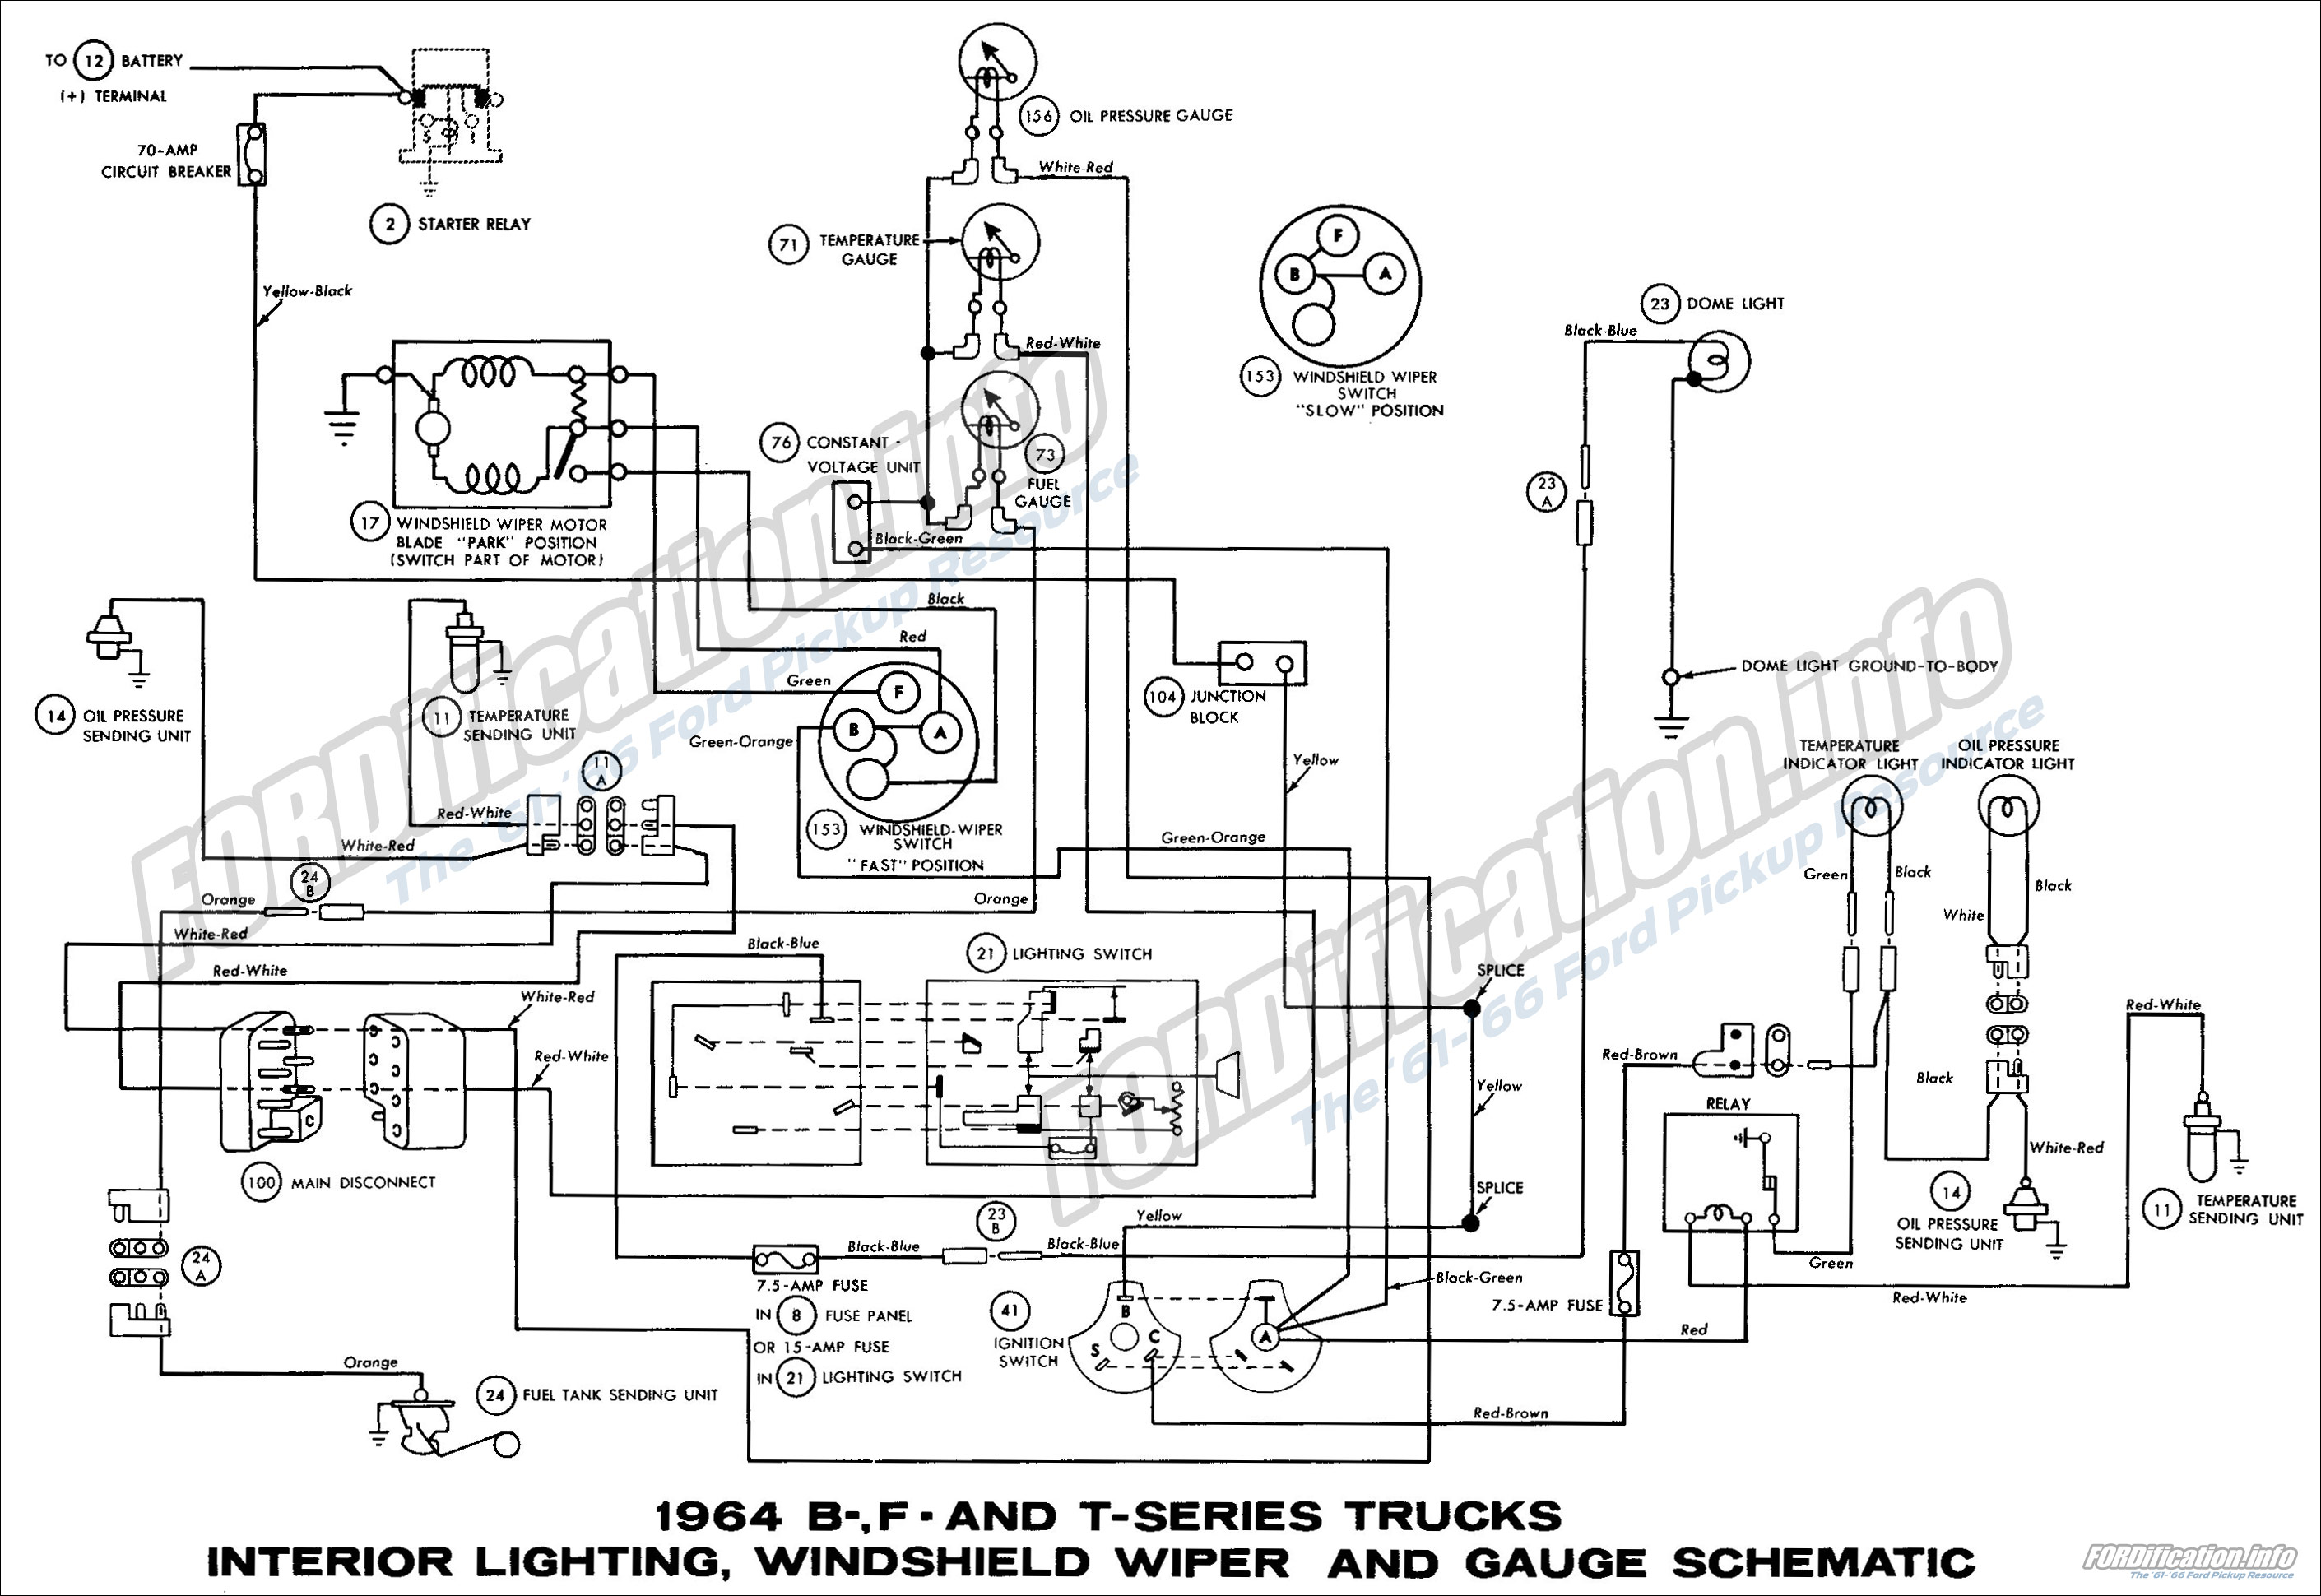 1964 ford wiring diagram wiring diagram show 1964 f100 wiring diagram wiring diagram expert 1964 ford fairlane wiring diagram 1964 ford truck wiring